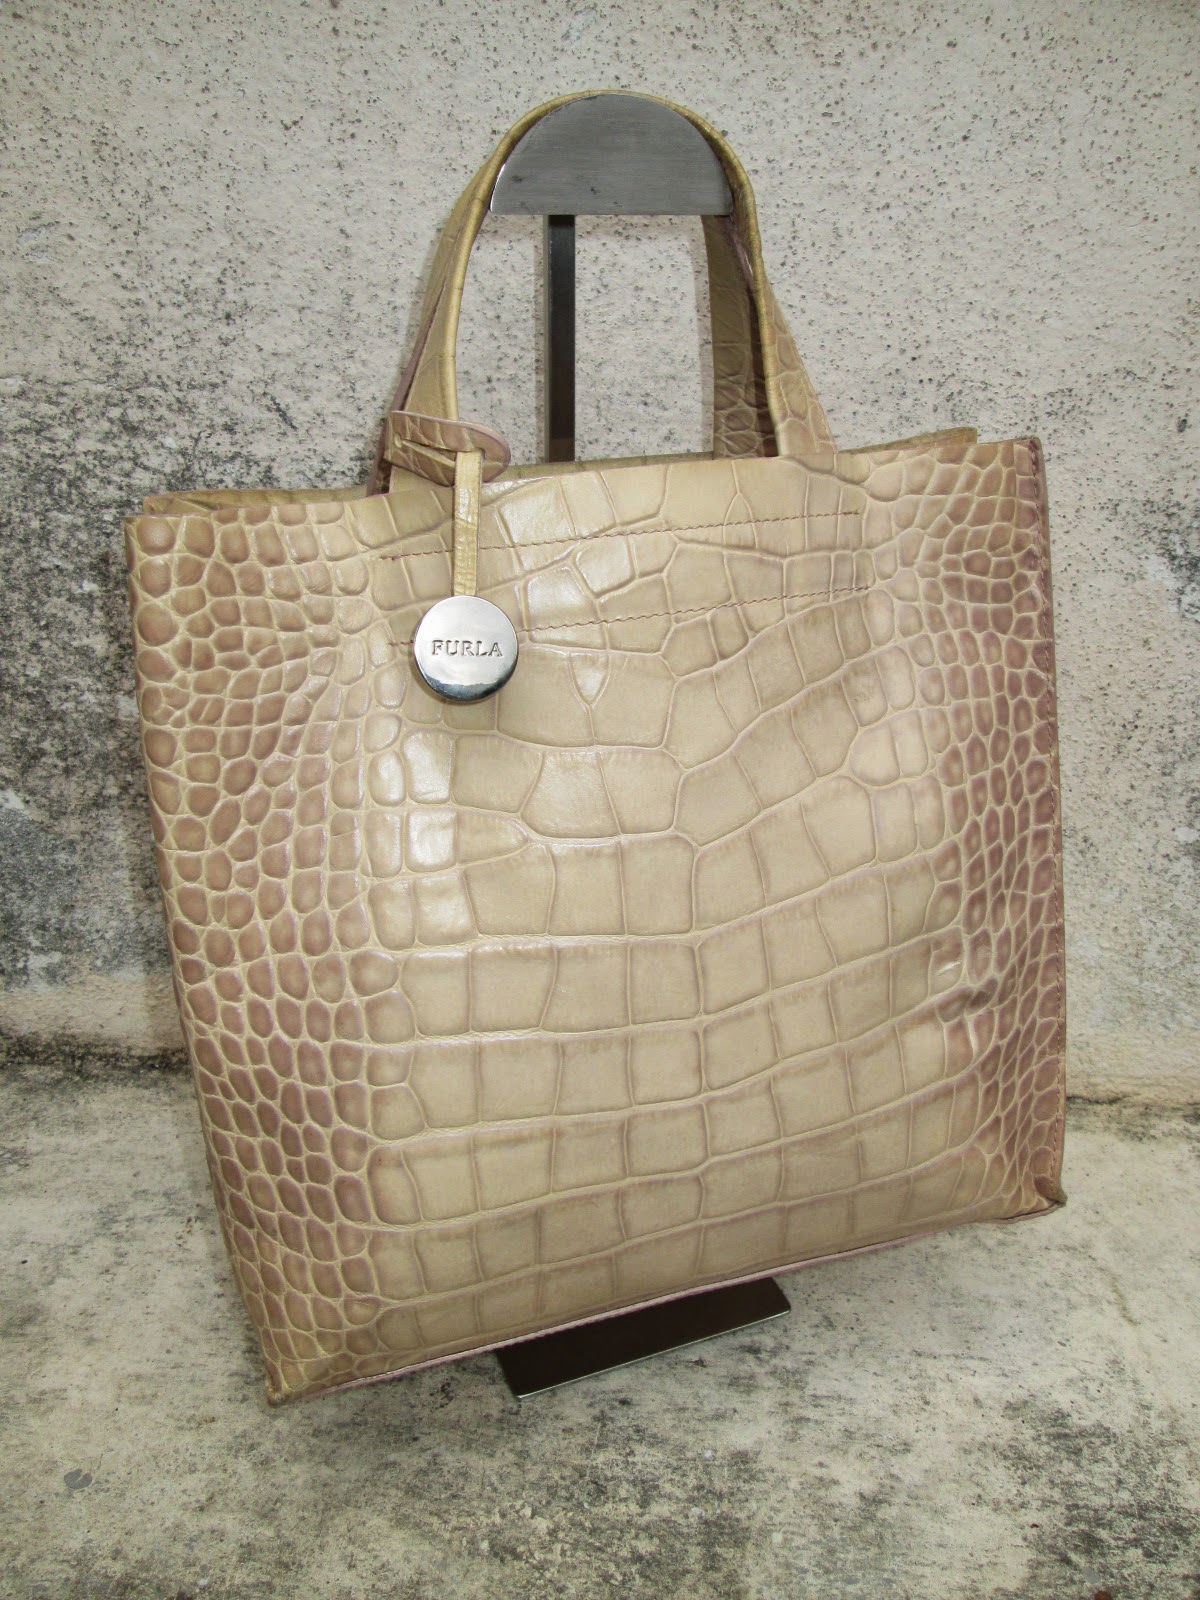 D0rayakeebag Authentic Furla Croc Leather Tote Handbag Sold